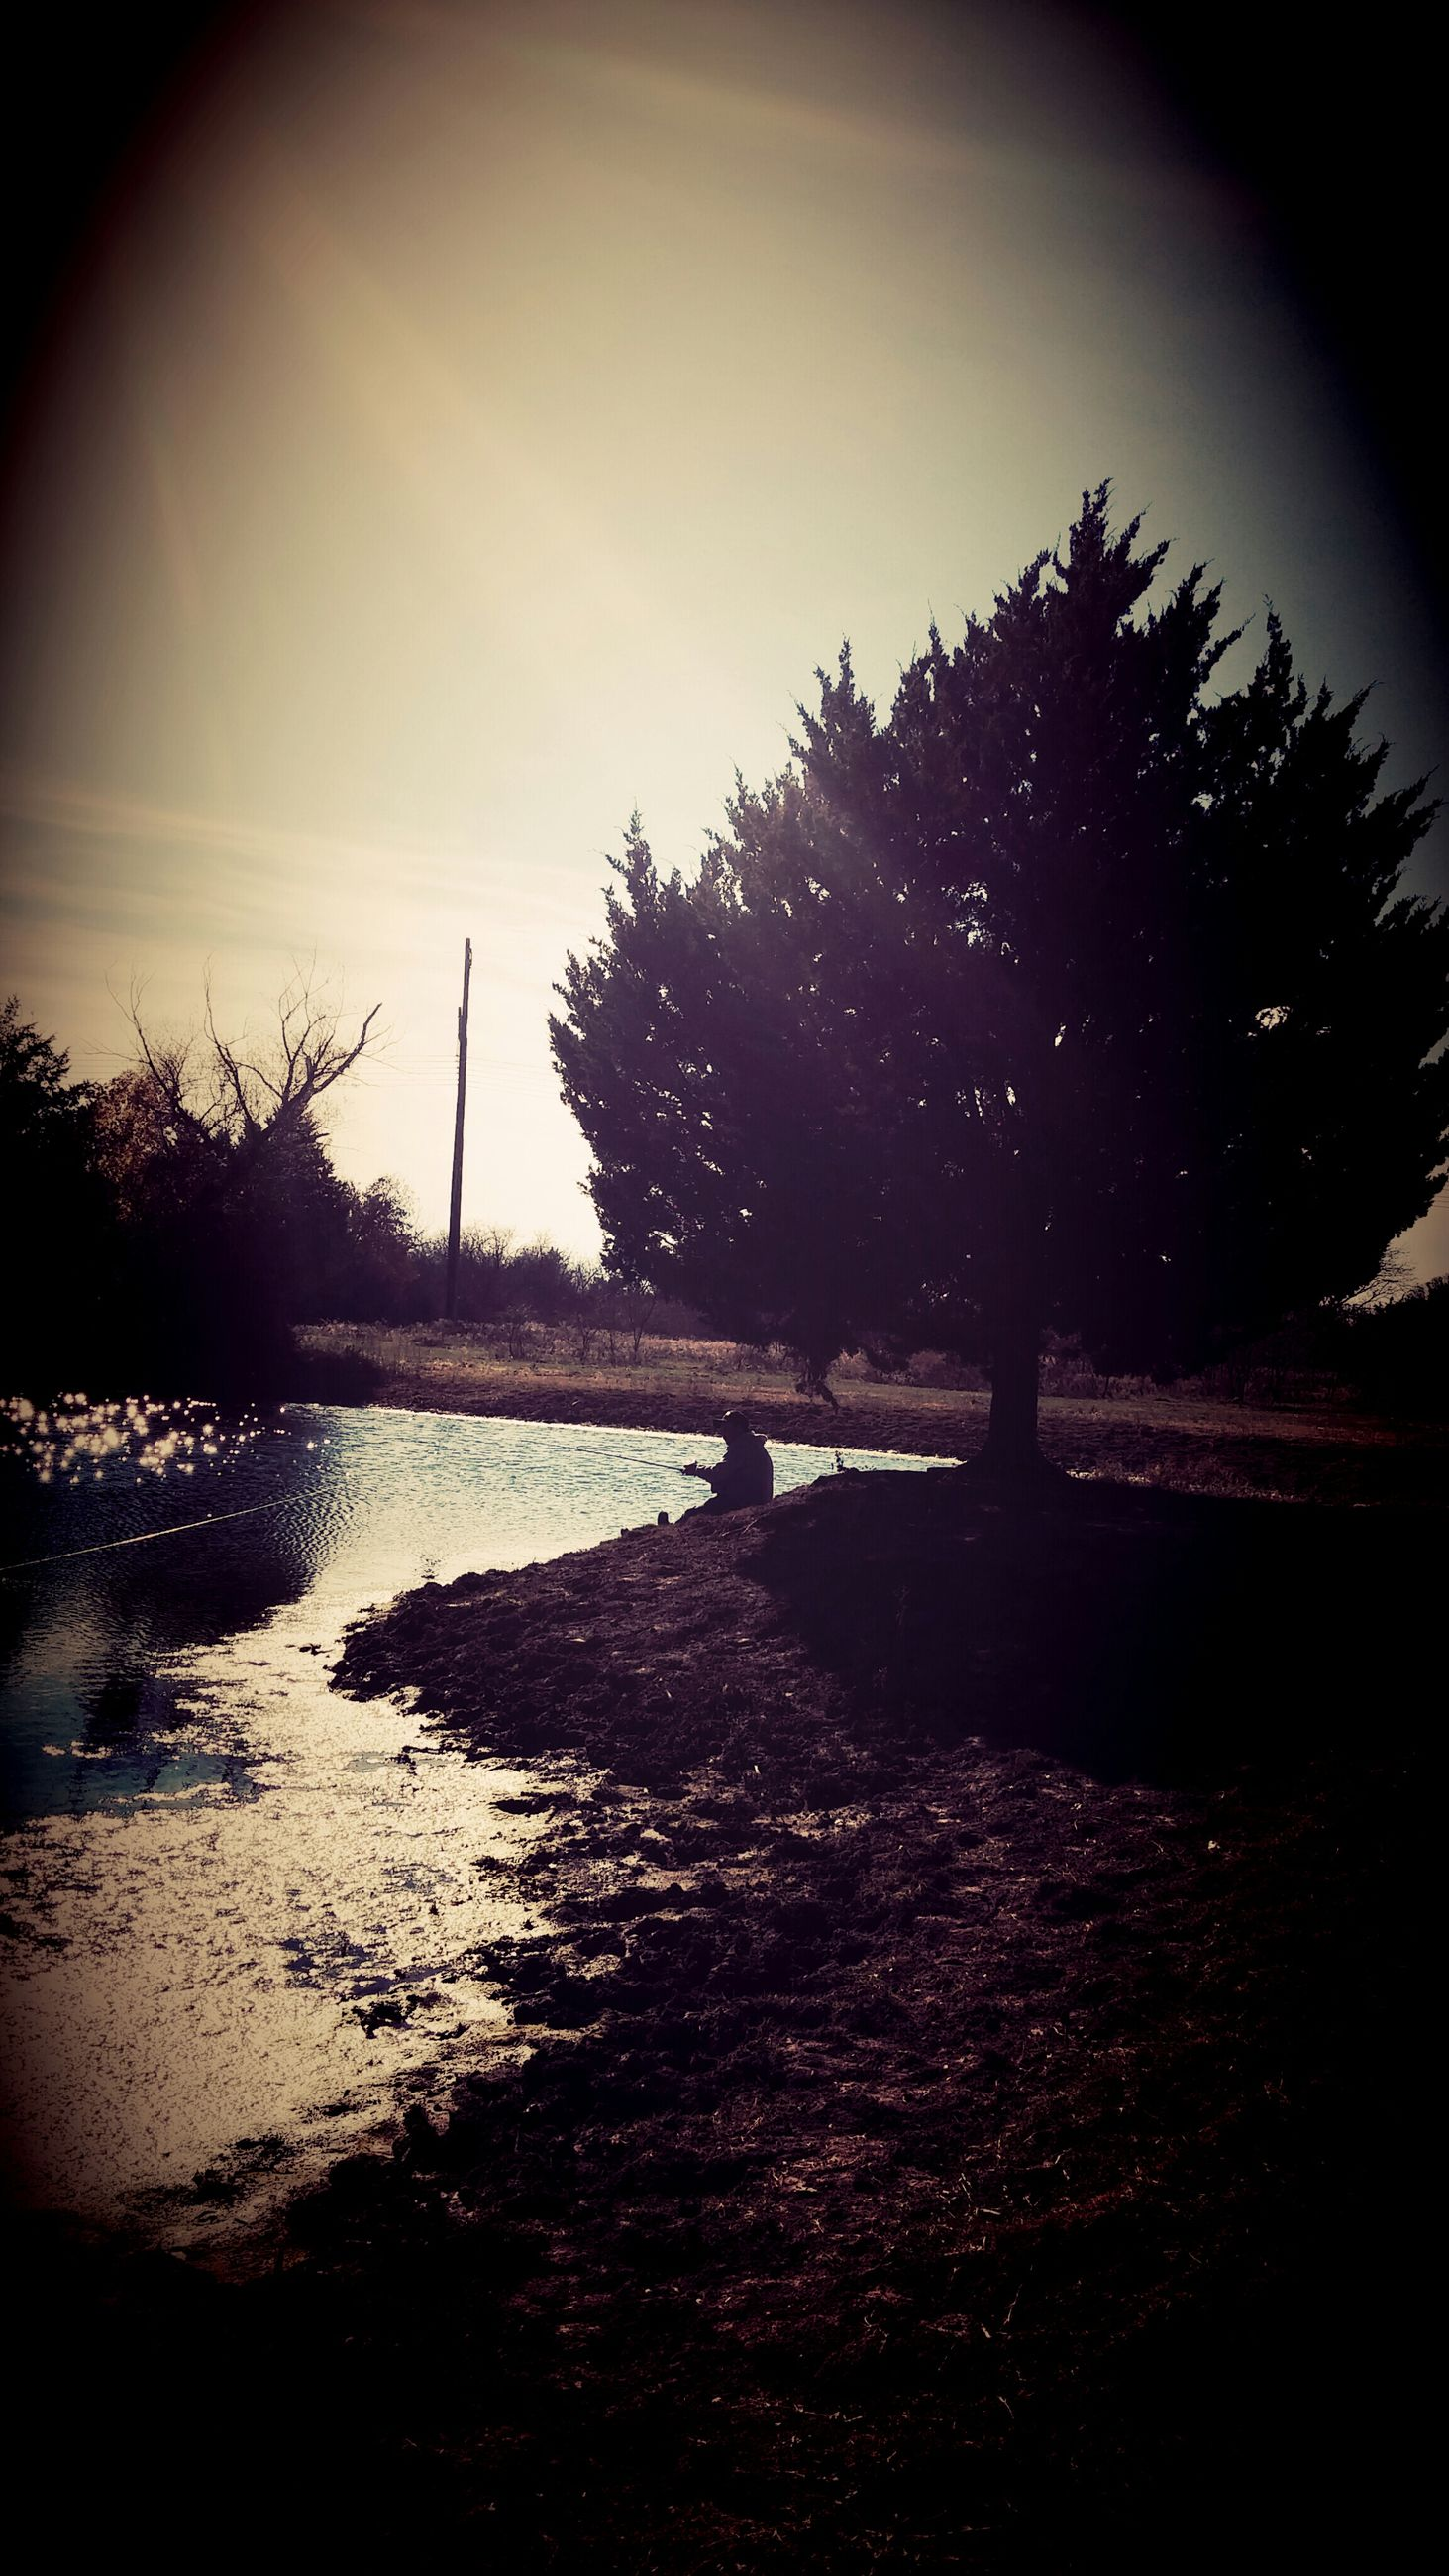 water, tranquility, tree, tranquil scene, silhouette, sky, scenics, nature, beauty in nature, lake, bare tree, river, reflection, sea, idyllic, outdoors, branch, non-urban scene, no people, calm